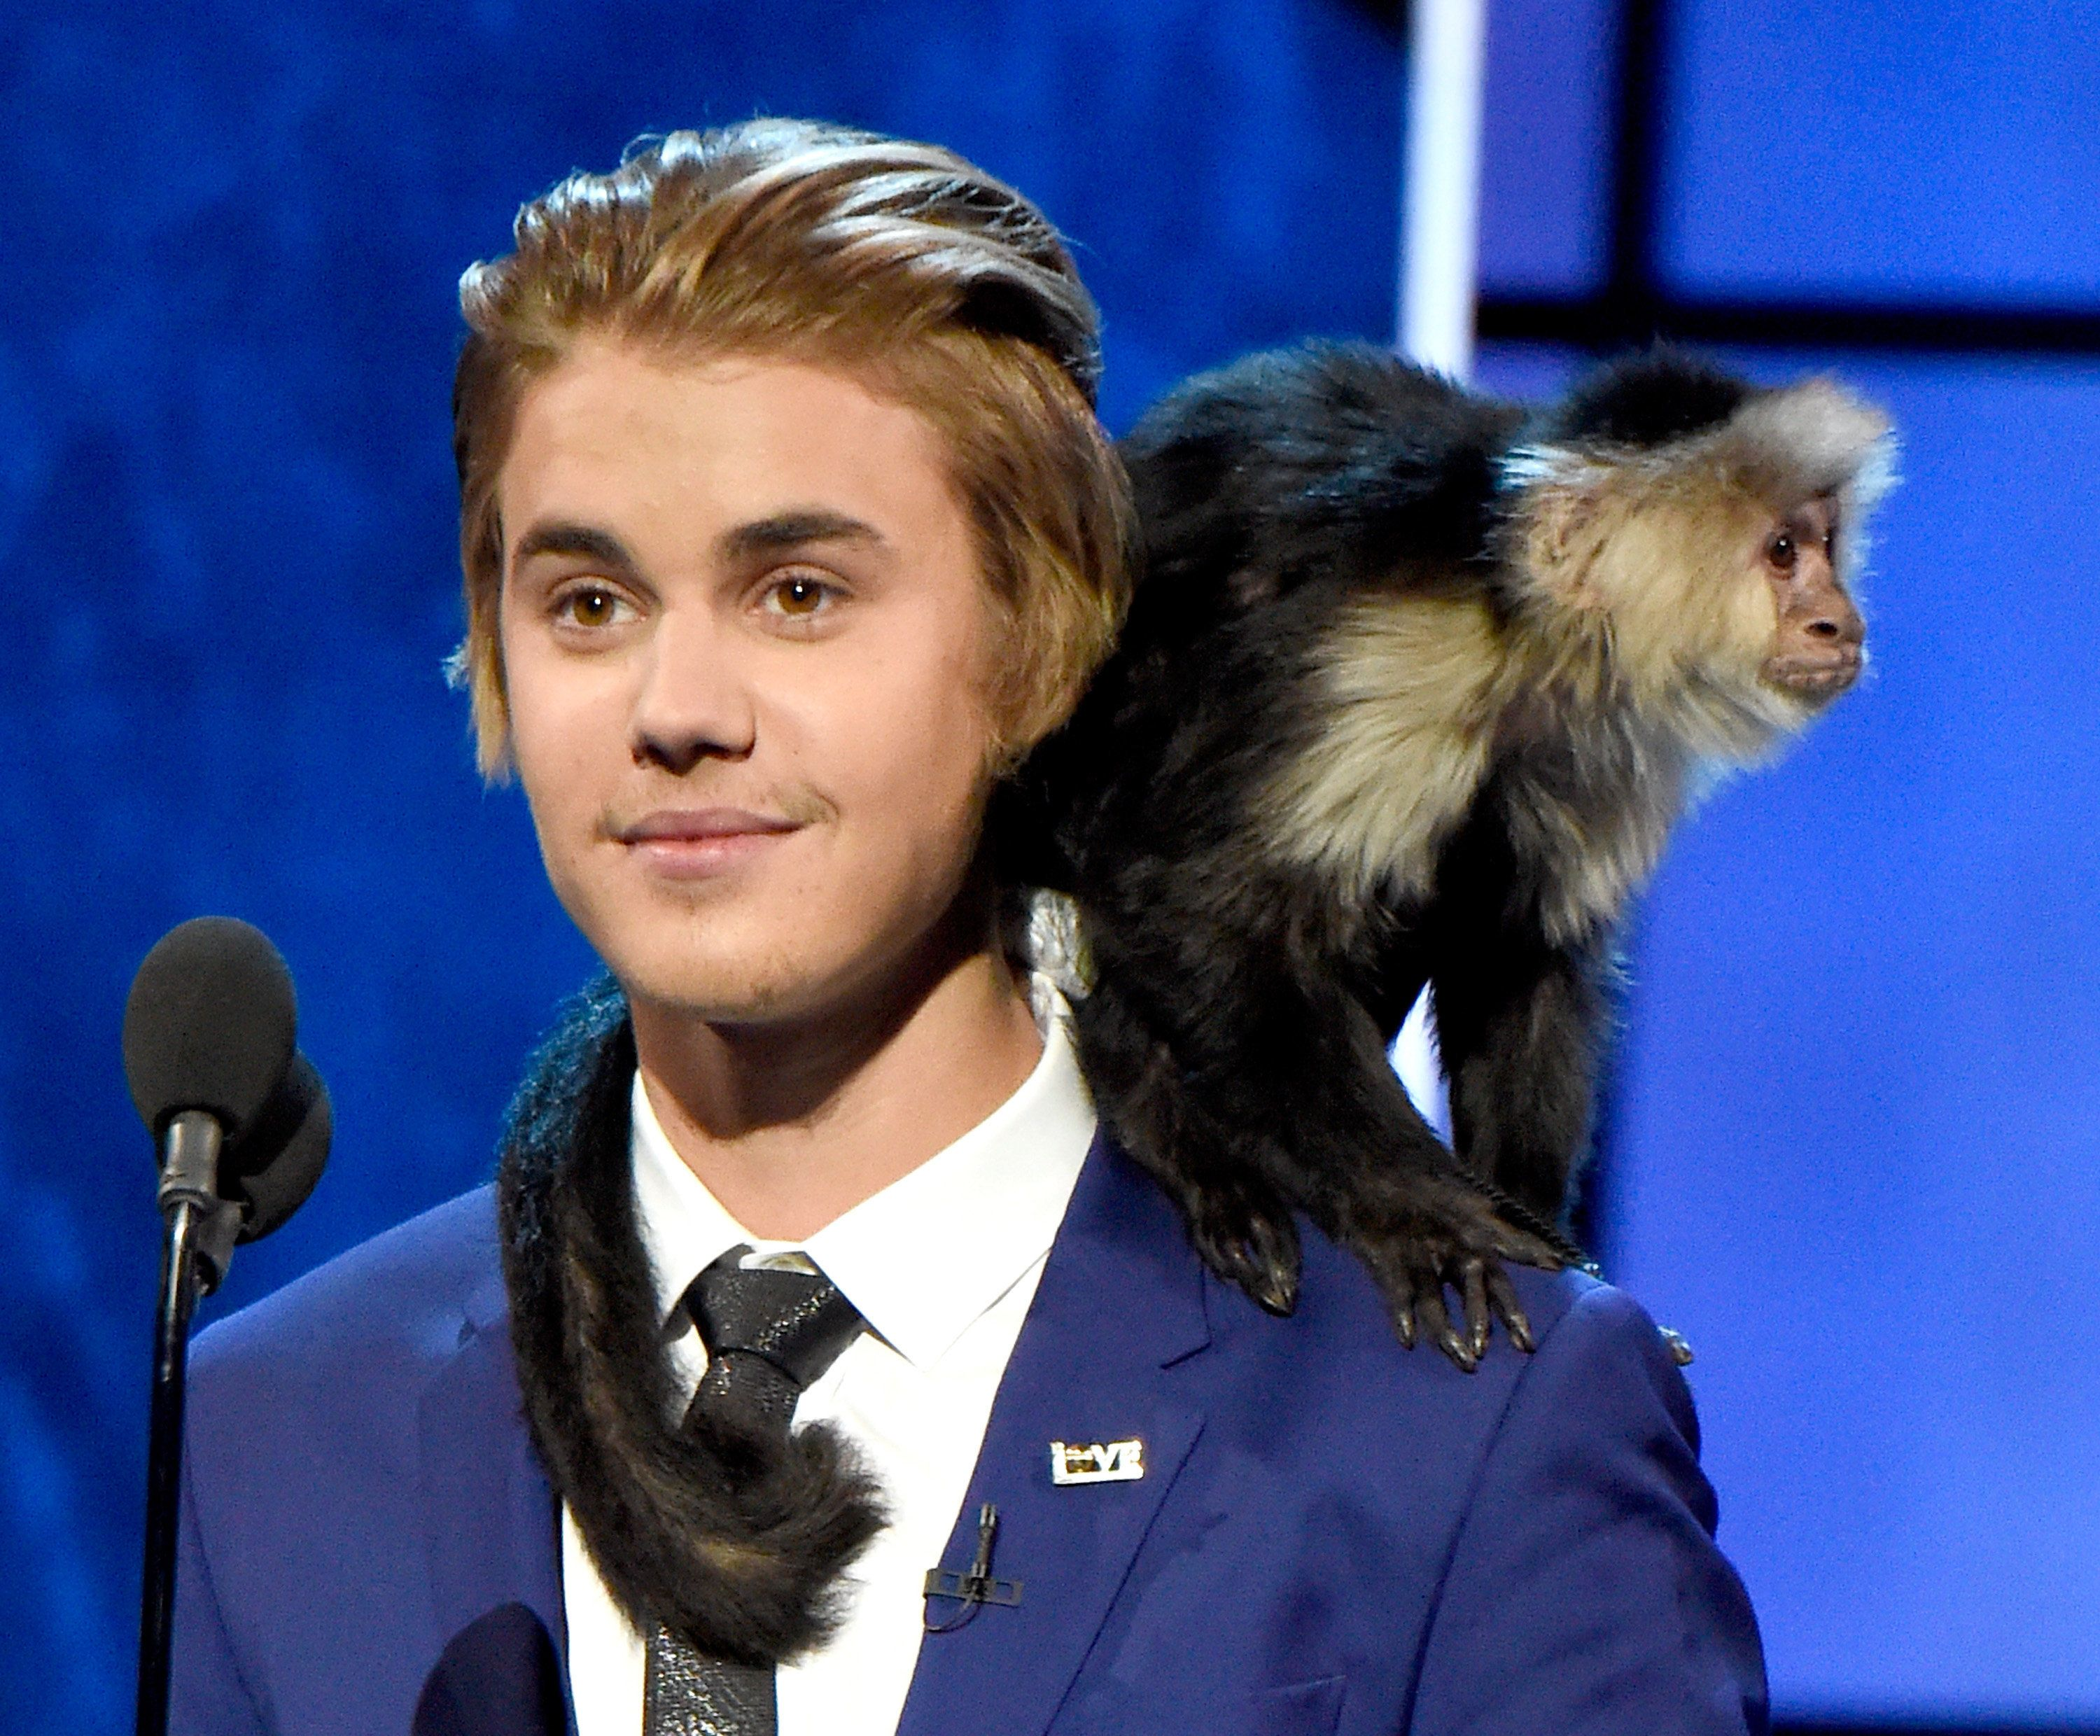 LOS ANGELES, CA - MARCH 14:  Honoree Justin Bieber and his monkey speak onstage at The Comedy Central Roast of Justin Bieber at Sony Pictures Studios on March 14, 2015 in Los Angeles, California. The Comedy Central Roast of Justin Bieber will air on March 30, 2015 at 10:00 p.m. ET/PT.  (Photo by Kevin Mazur/WireImage)